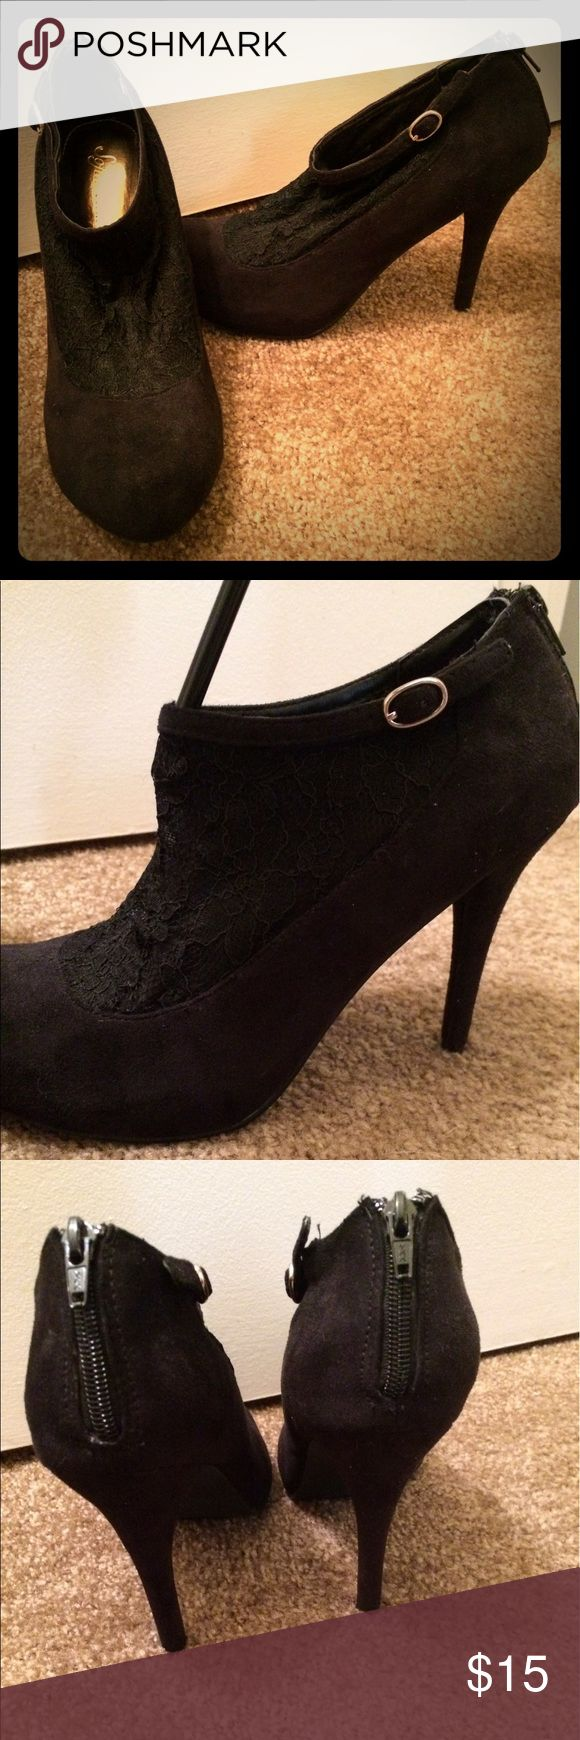 Black Lace Heels w/ Buckle Like-new condition! Beautiful Lace on front of shoe, zipper on the heel to fit snug. 3 1/2-inch heel. Suede-like material on entire shoe except the Lace portion. Decorative buckle on side. Ankle-height. sofia vergara Shoes Heels